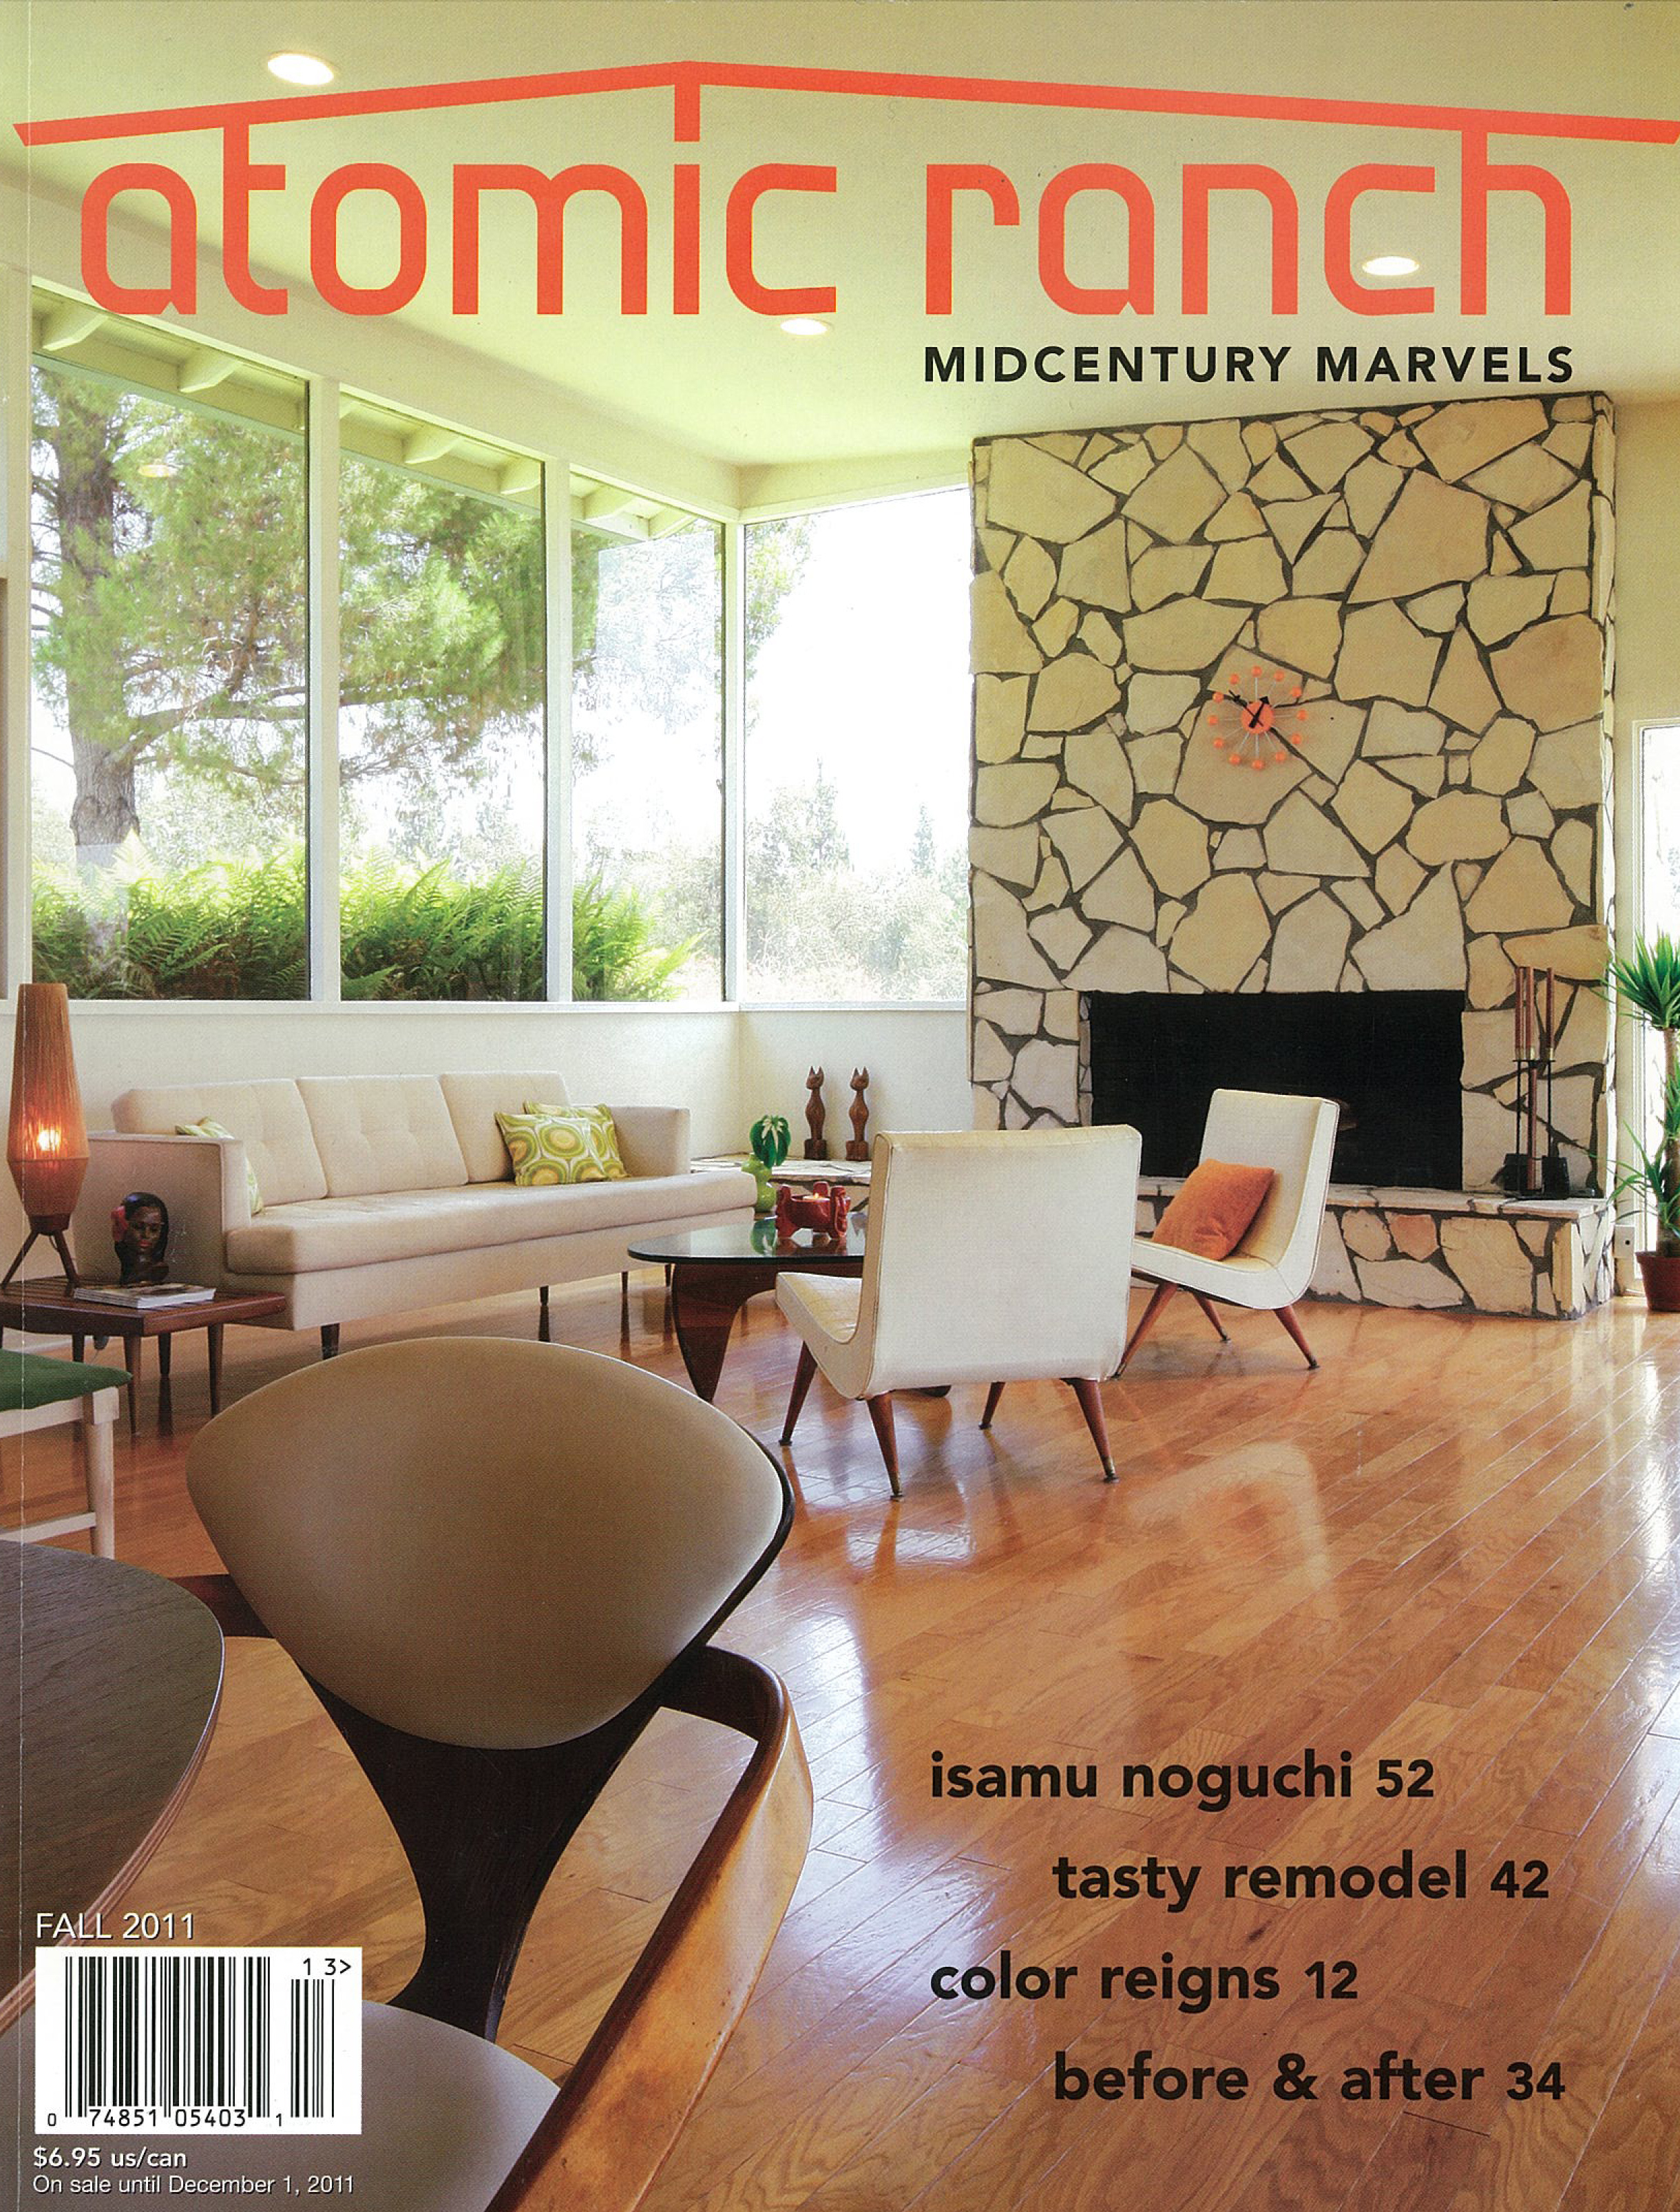 Atomic Ranch Front cover.jpg